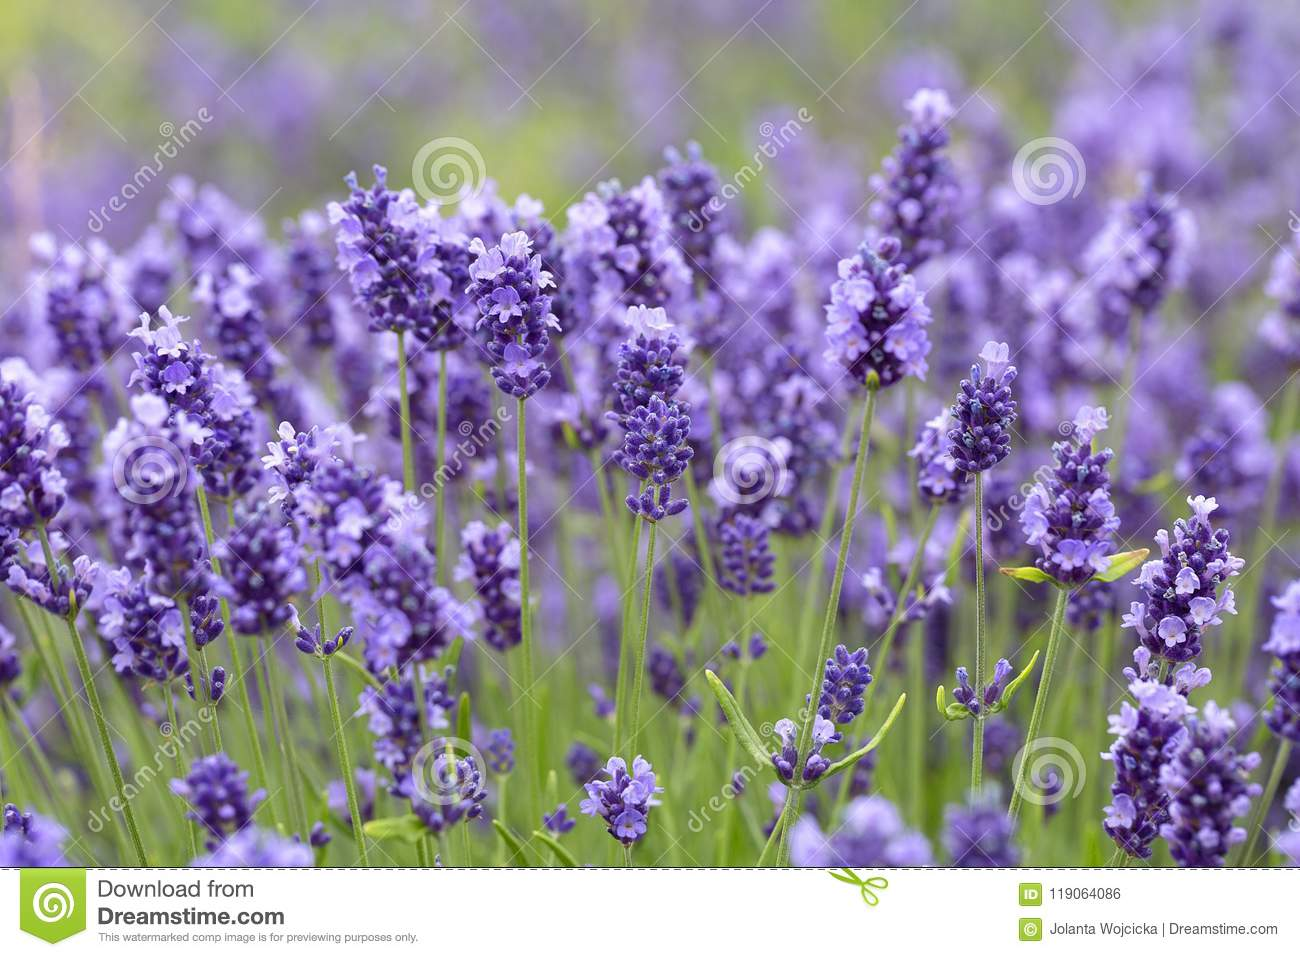 Lavender flowers blooming in the garden beautiful lavender field download lavender flowers blooming in the garden beautiful lavender field stock photo image izmirmasajfo